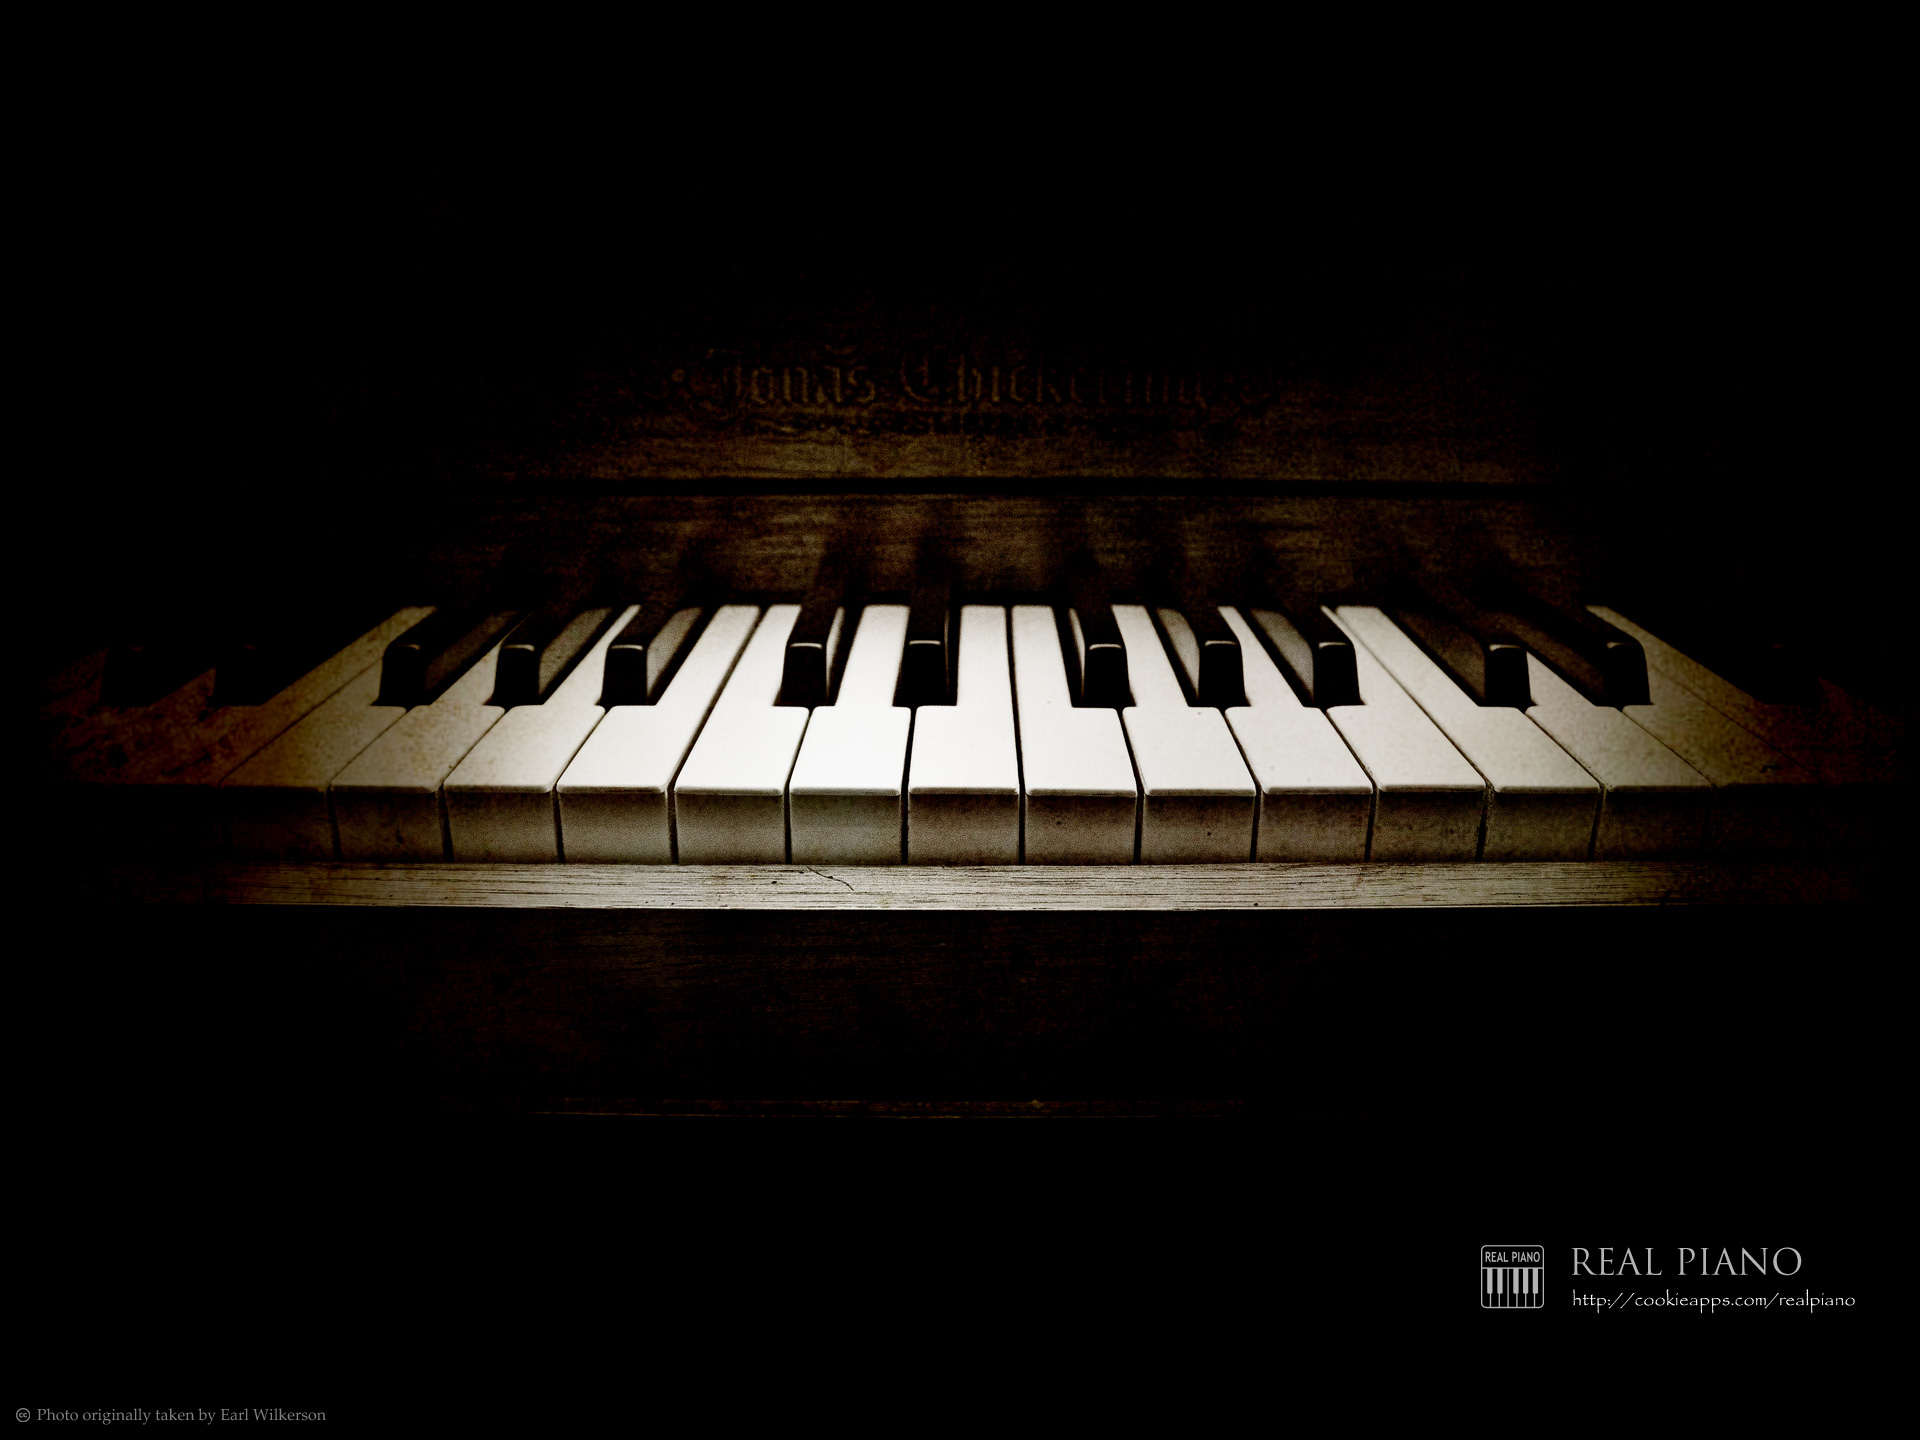 Piano Music Wallpaper: Piano Is My Everything!